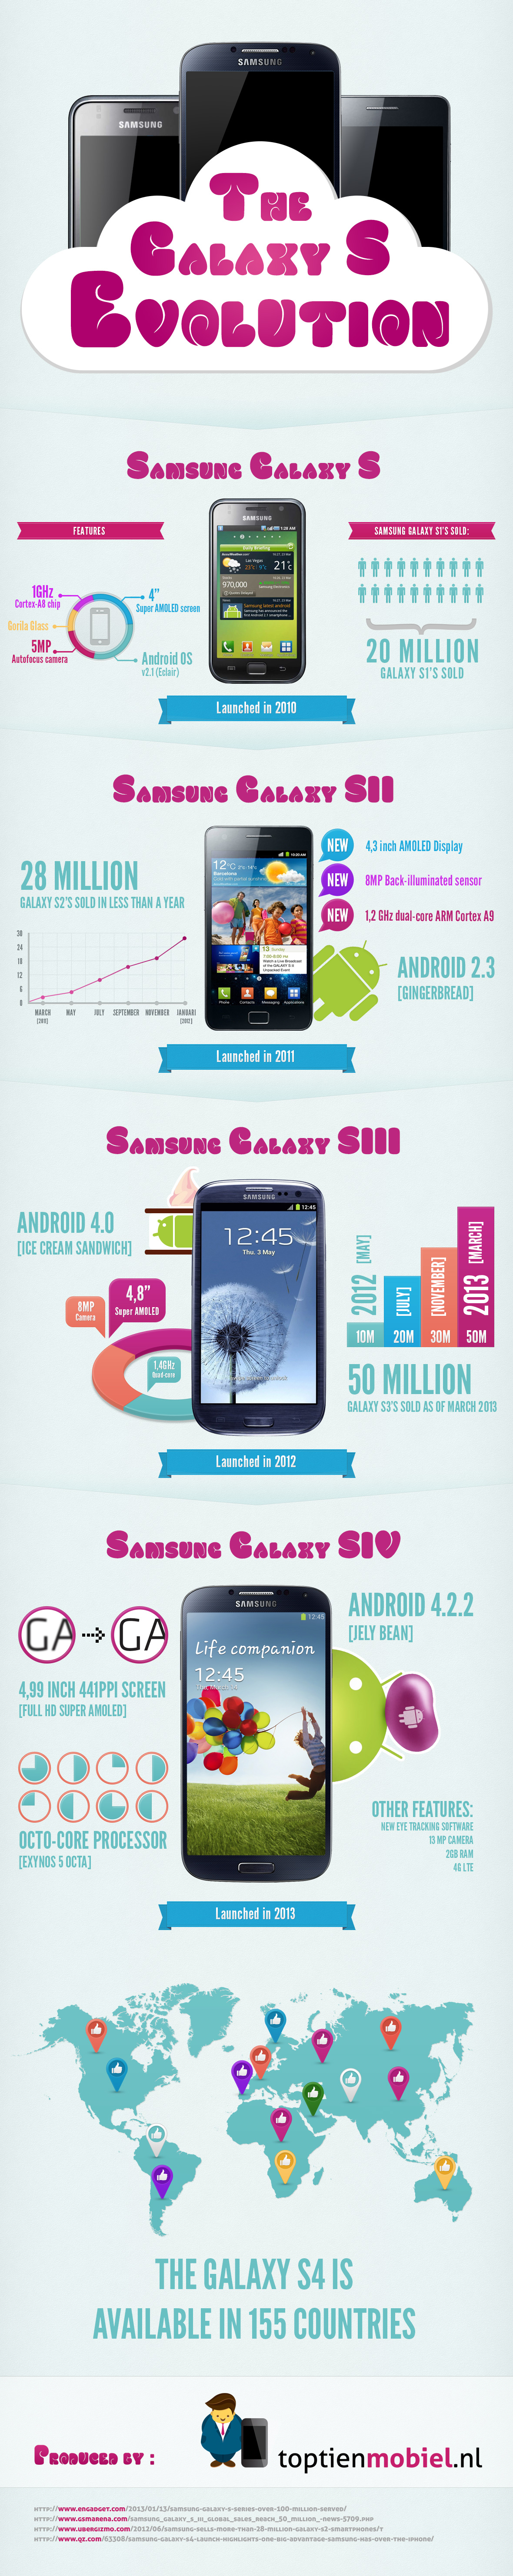 samsung-galaxy-s-evolution-infographic